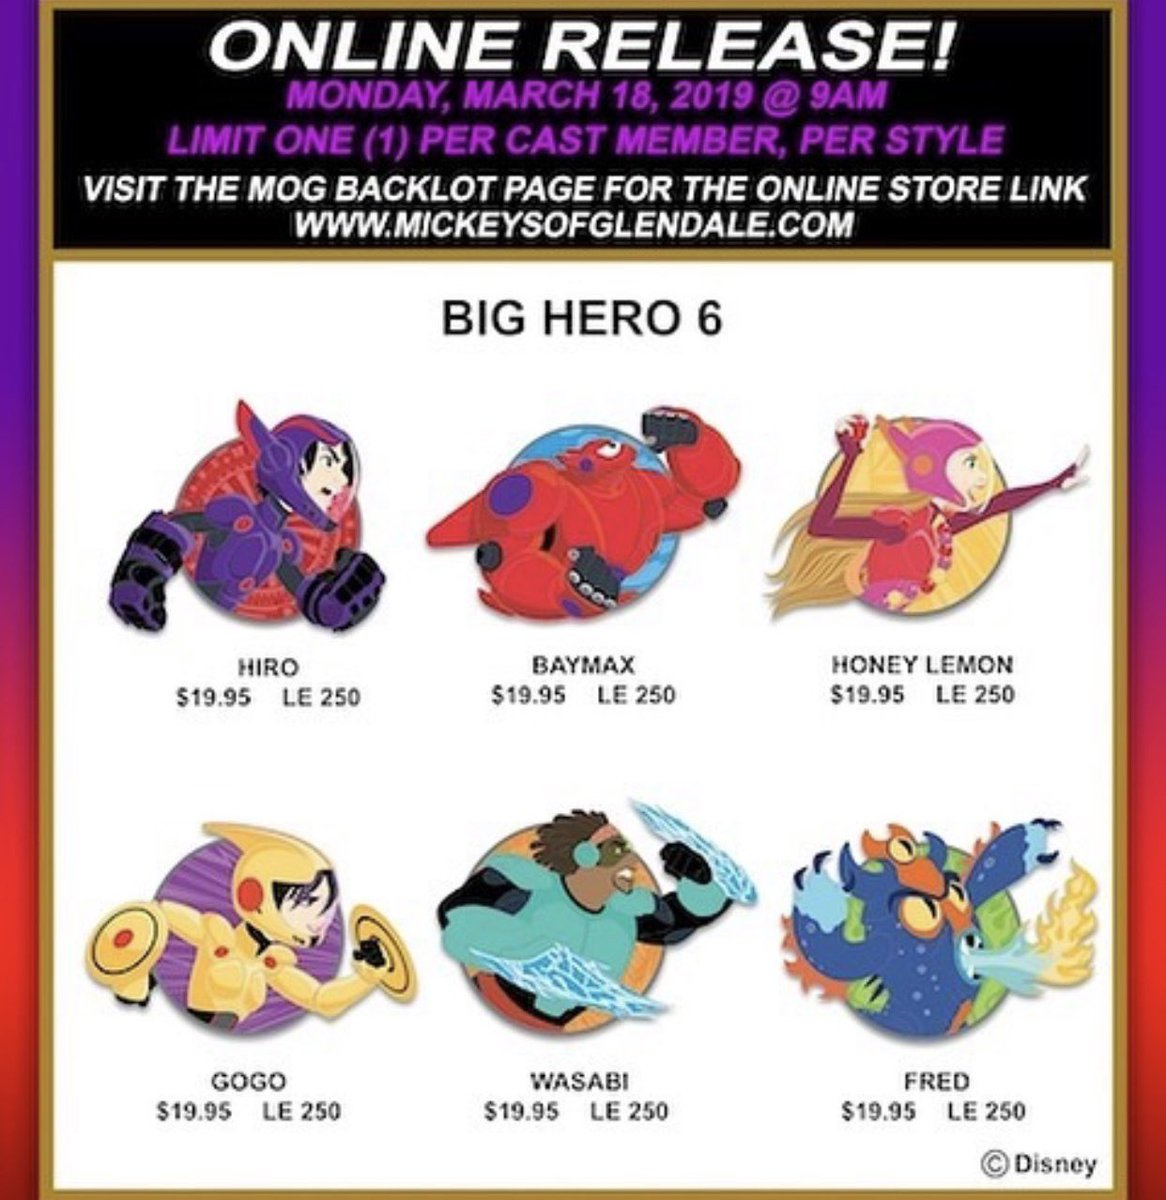 ab75a46c7f Big Hero 6 profile pins release tomorrow online for Disney Cast Members:  https:/